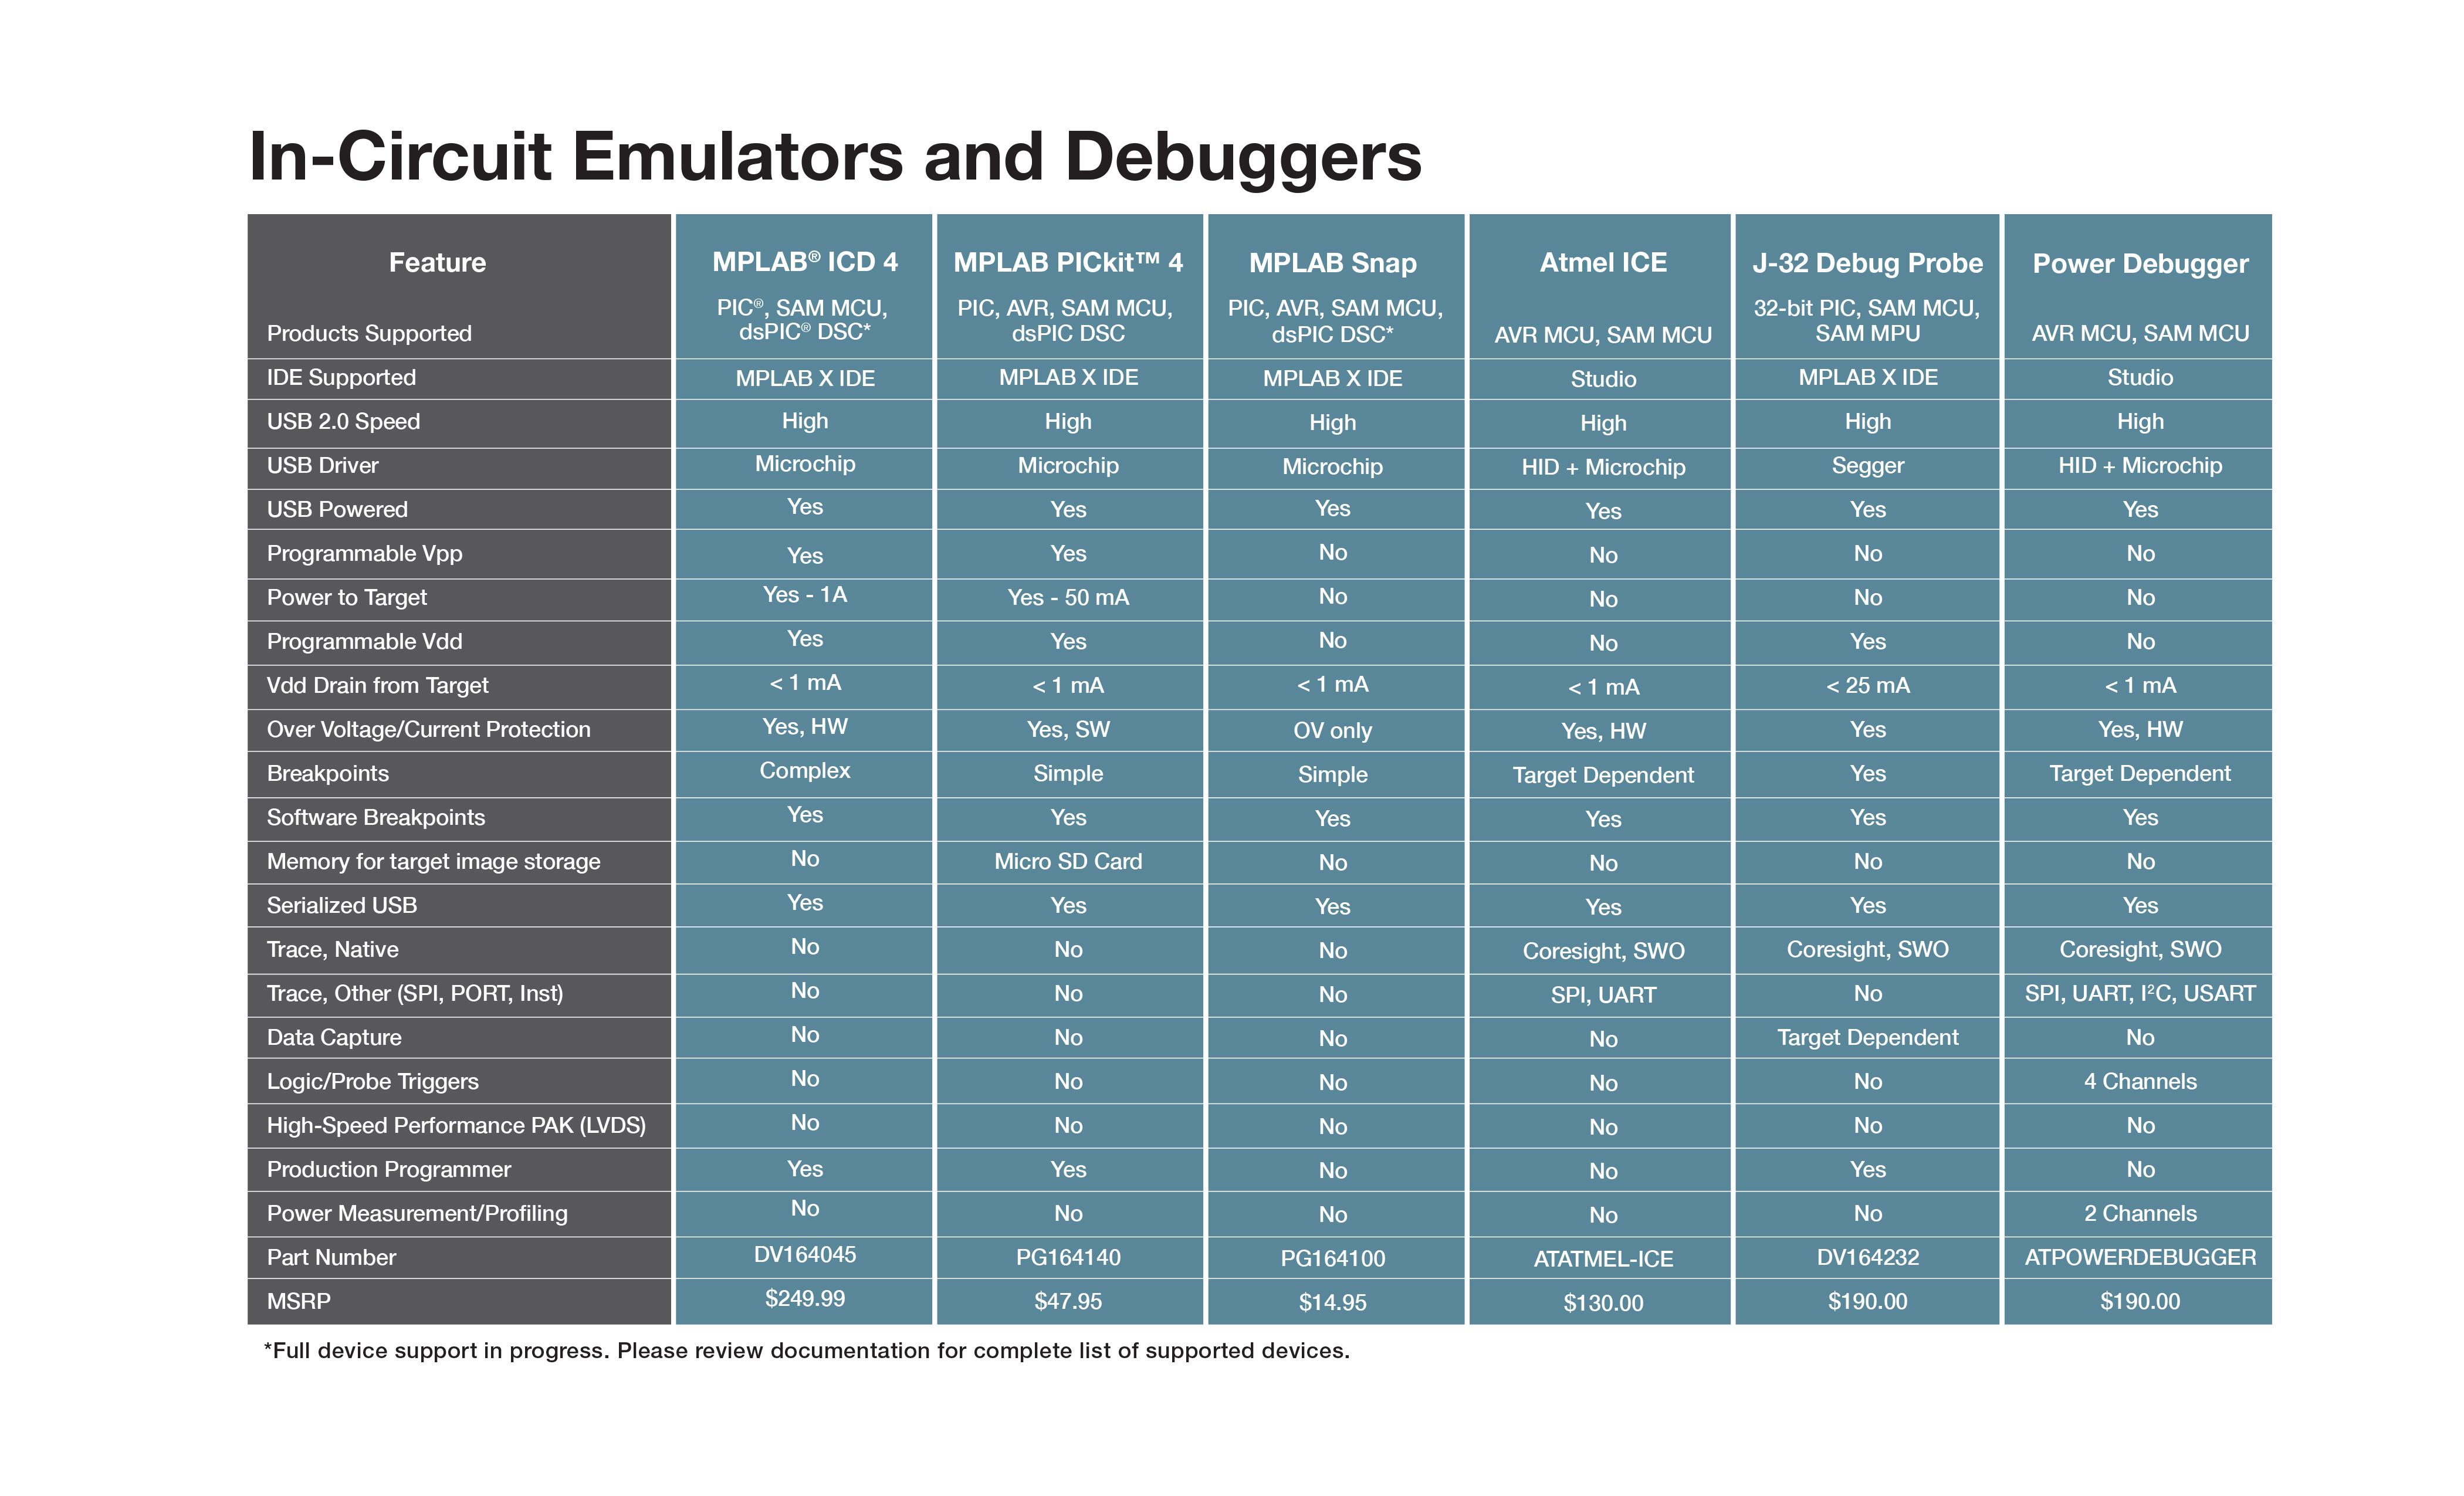 In-Circuit Emulators and Debuggers